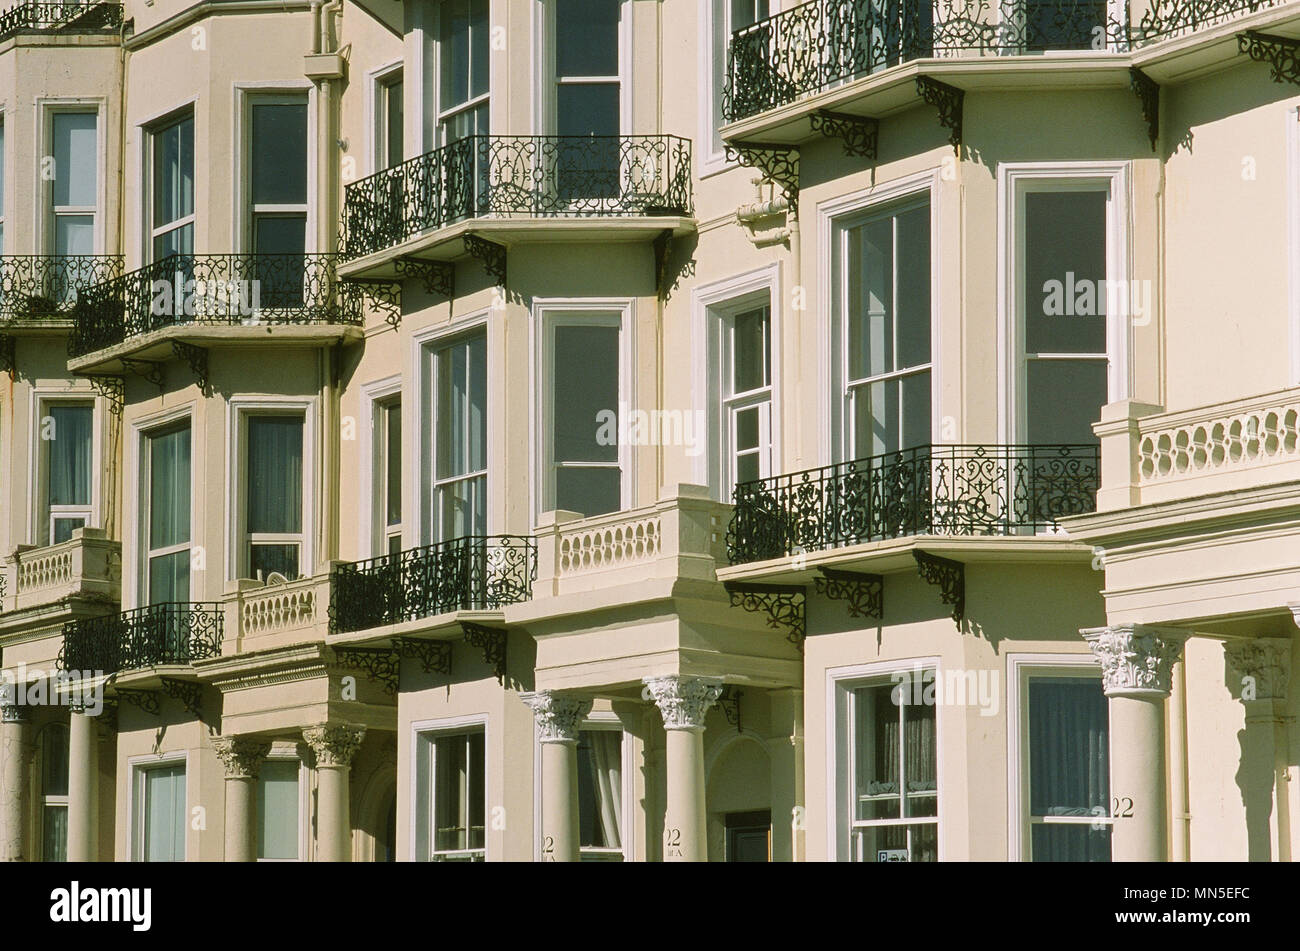 Victorian terraced house fronts at Warrior Square, St Leonards On Sea, Hastings, East Sussex UK - Stock Image